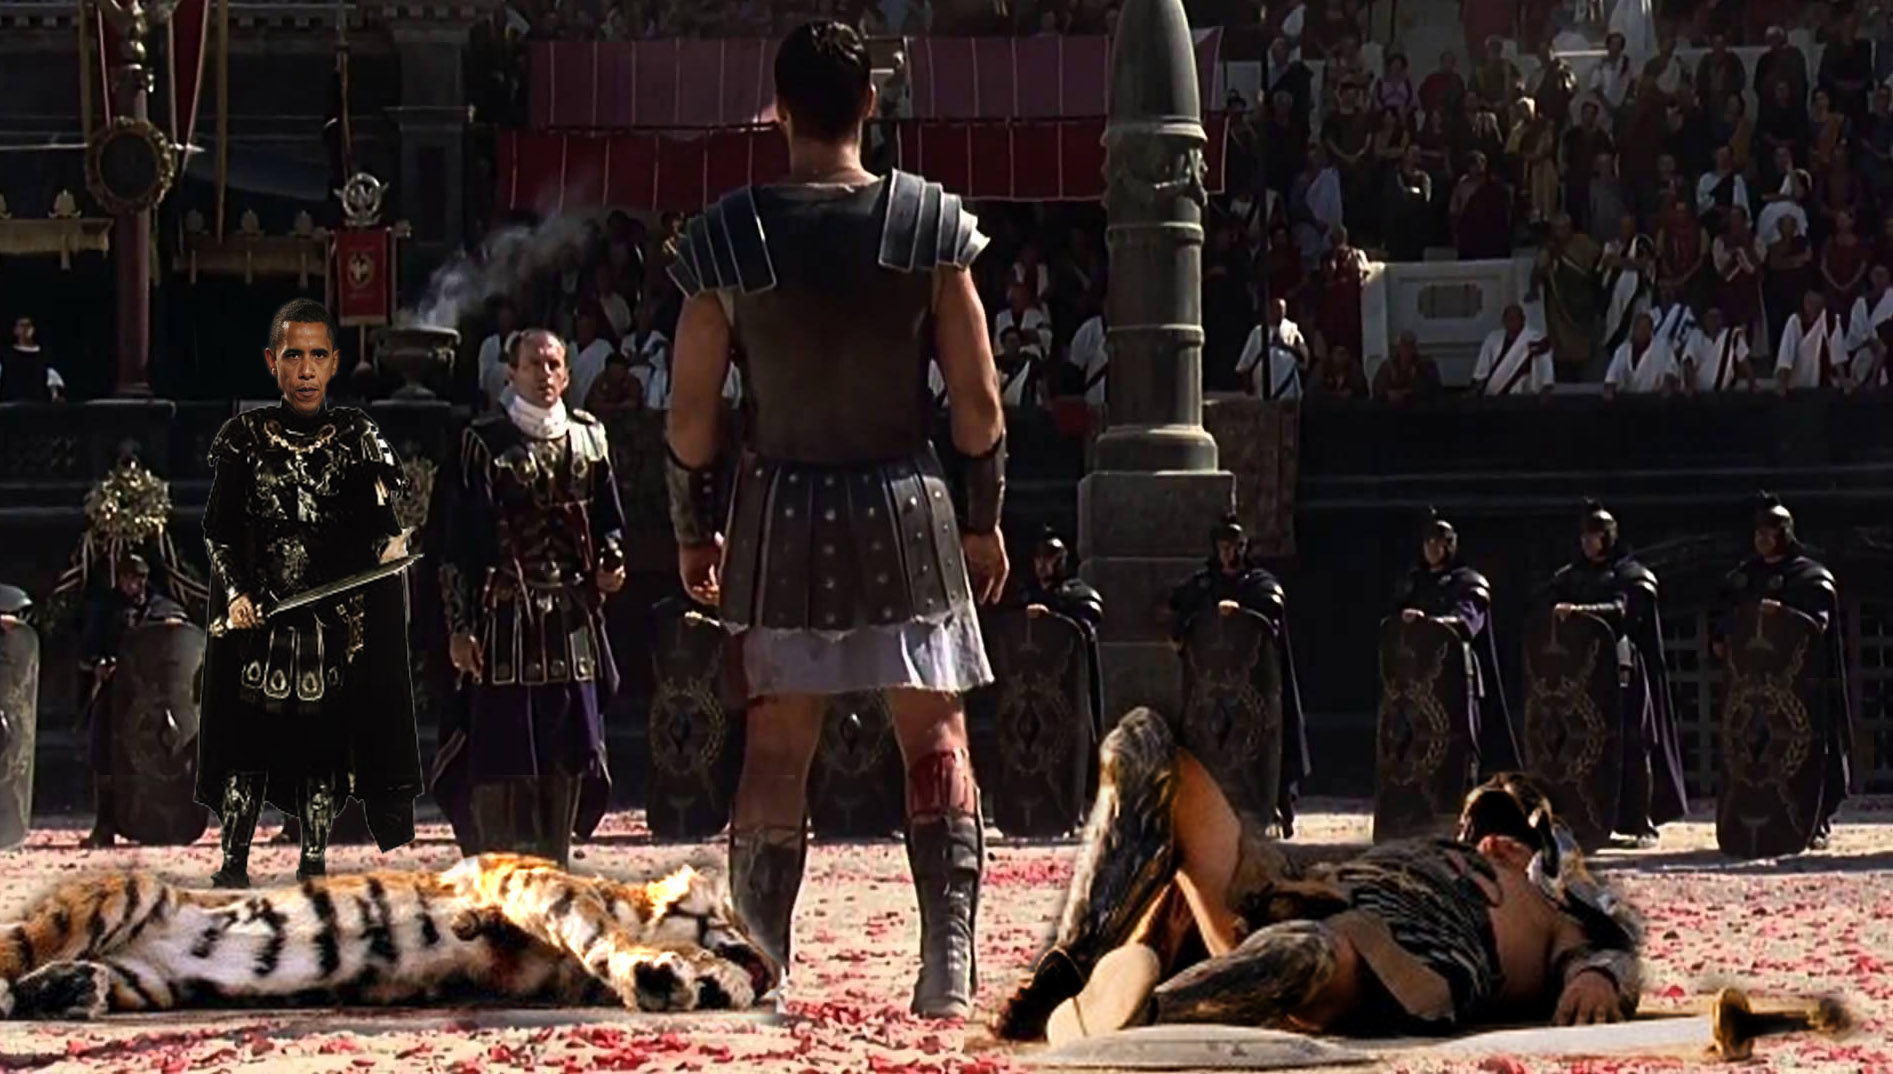 Christians Secretly Being Forced to Fight To Death In Roman Coliseum